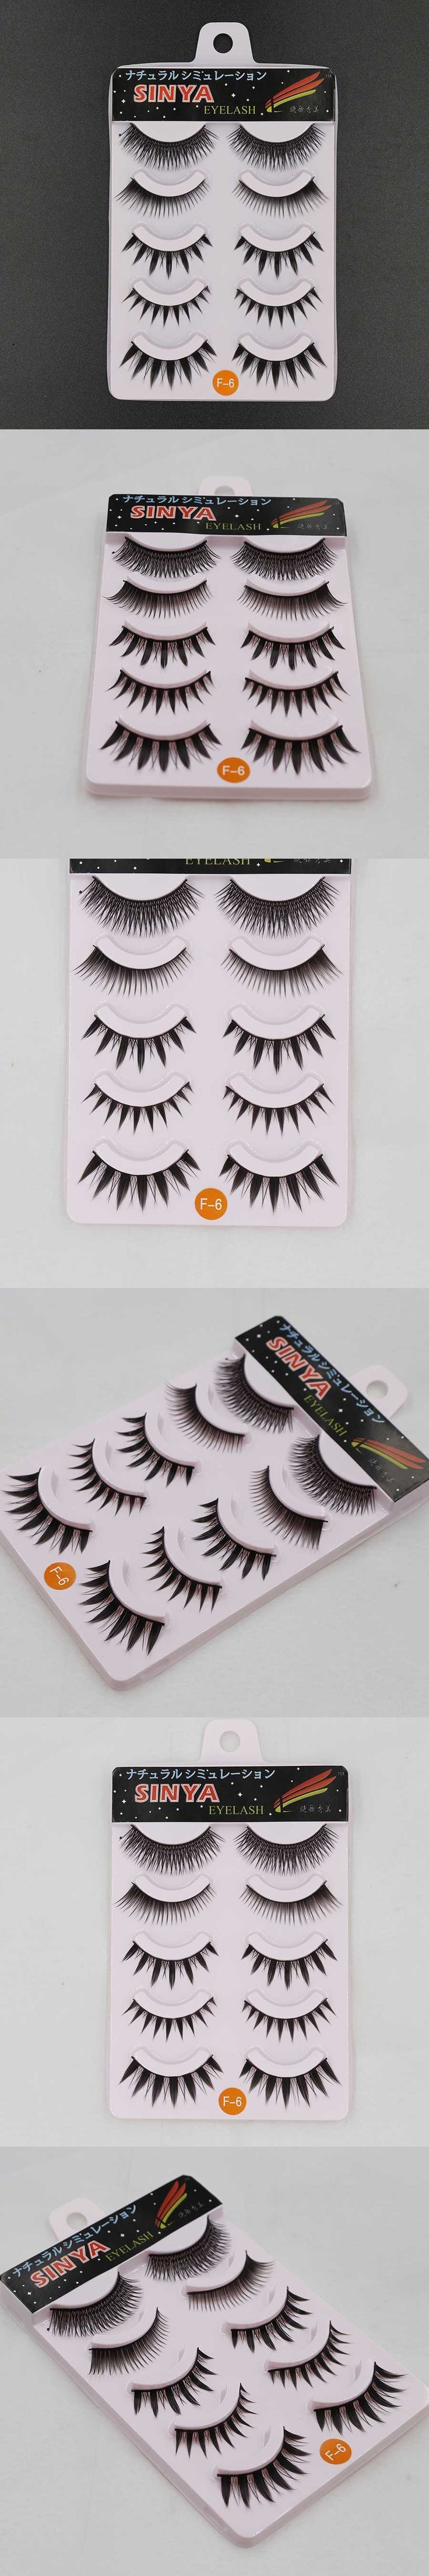 10 Pairs Crisscross Thick 3D Mink Eyelashes Extension False Eye Lashes Cilios Posticos Naturais Faux Cils Nep Wimpers F-6x2